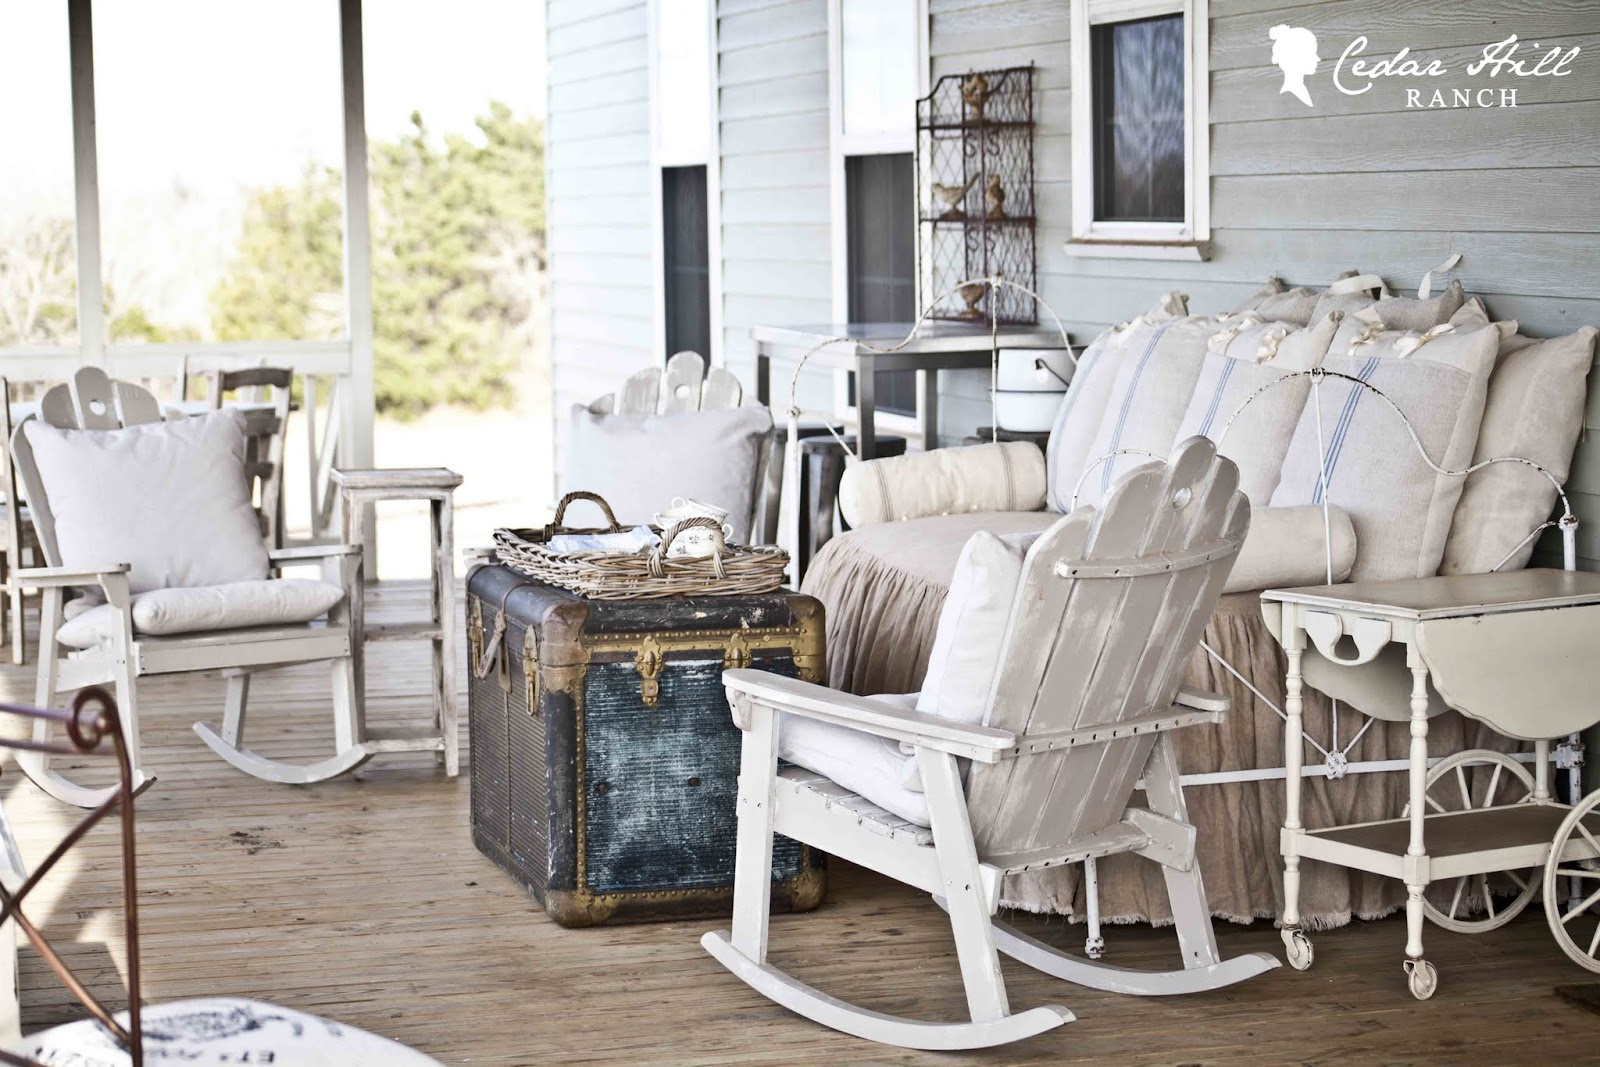 Pretty Spring Porch Guest Post